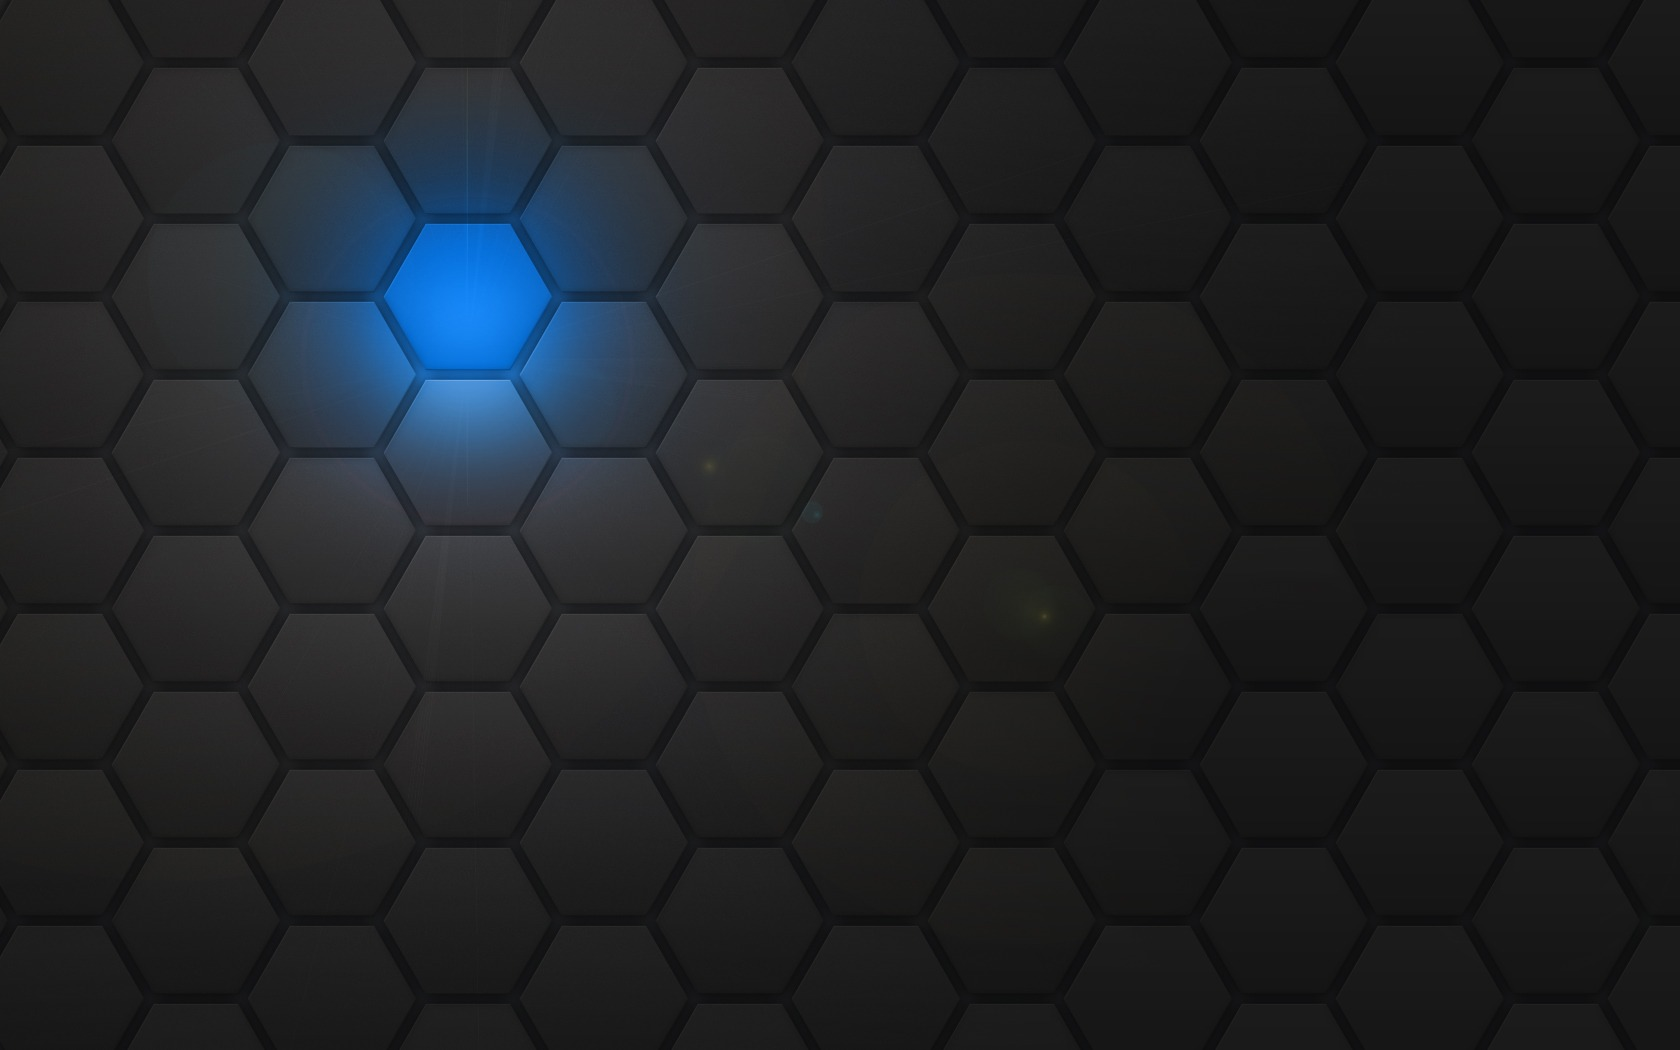 hexagon wallpaper abstract 3d wallpapers in   format for